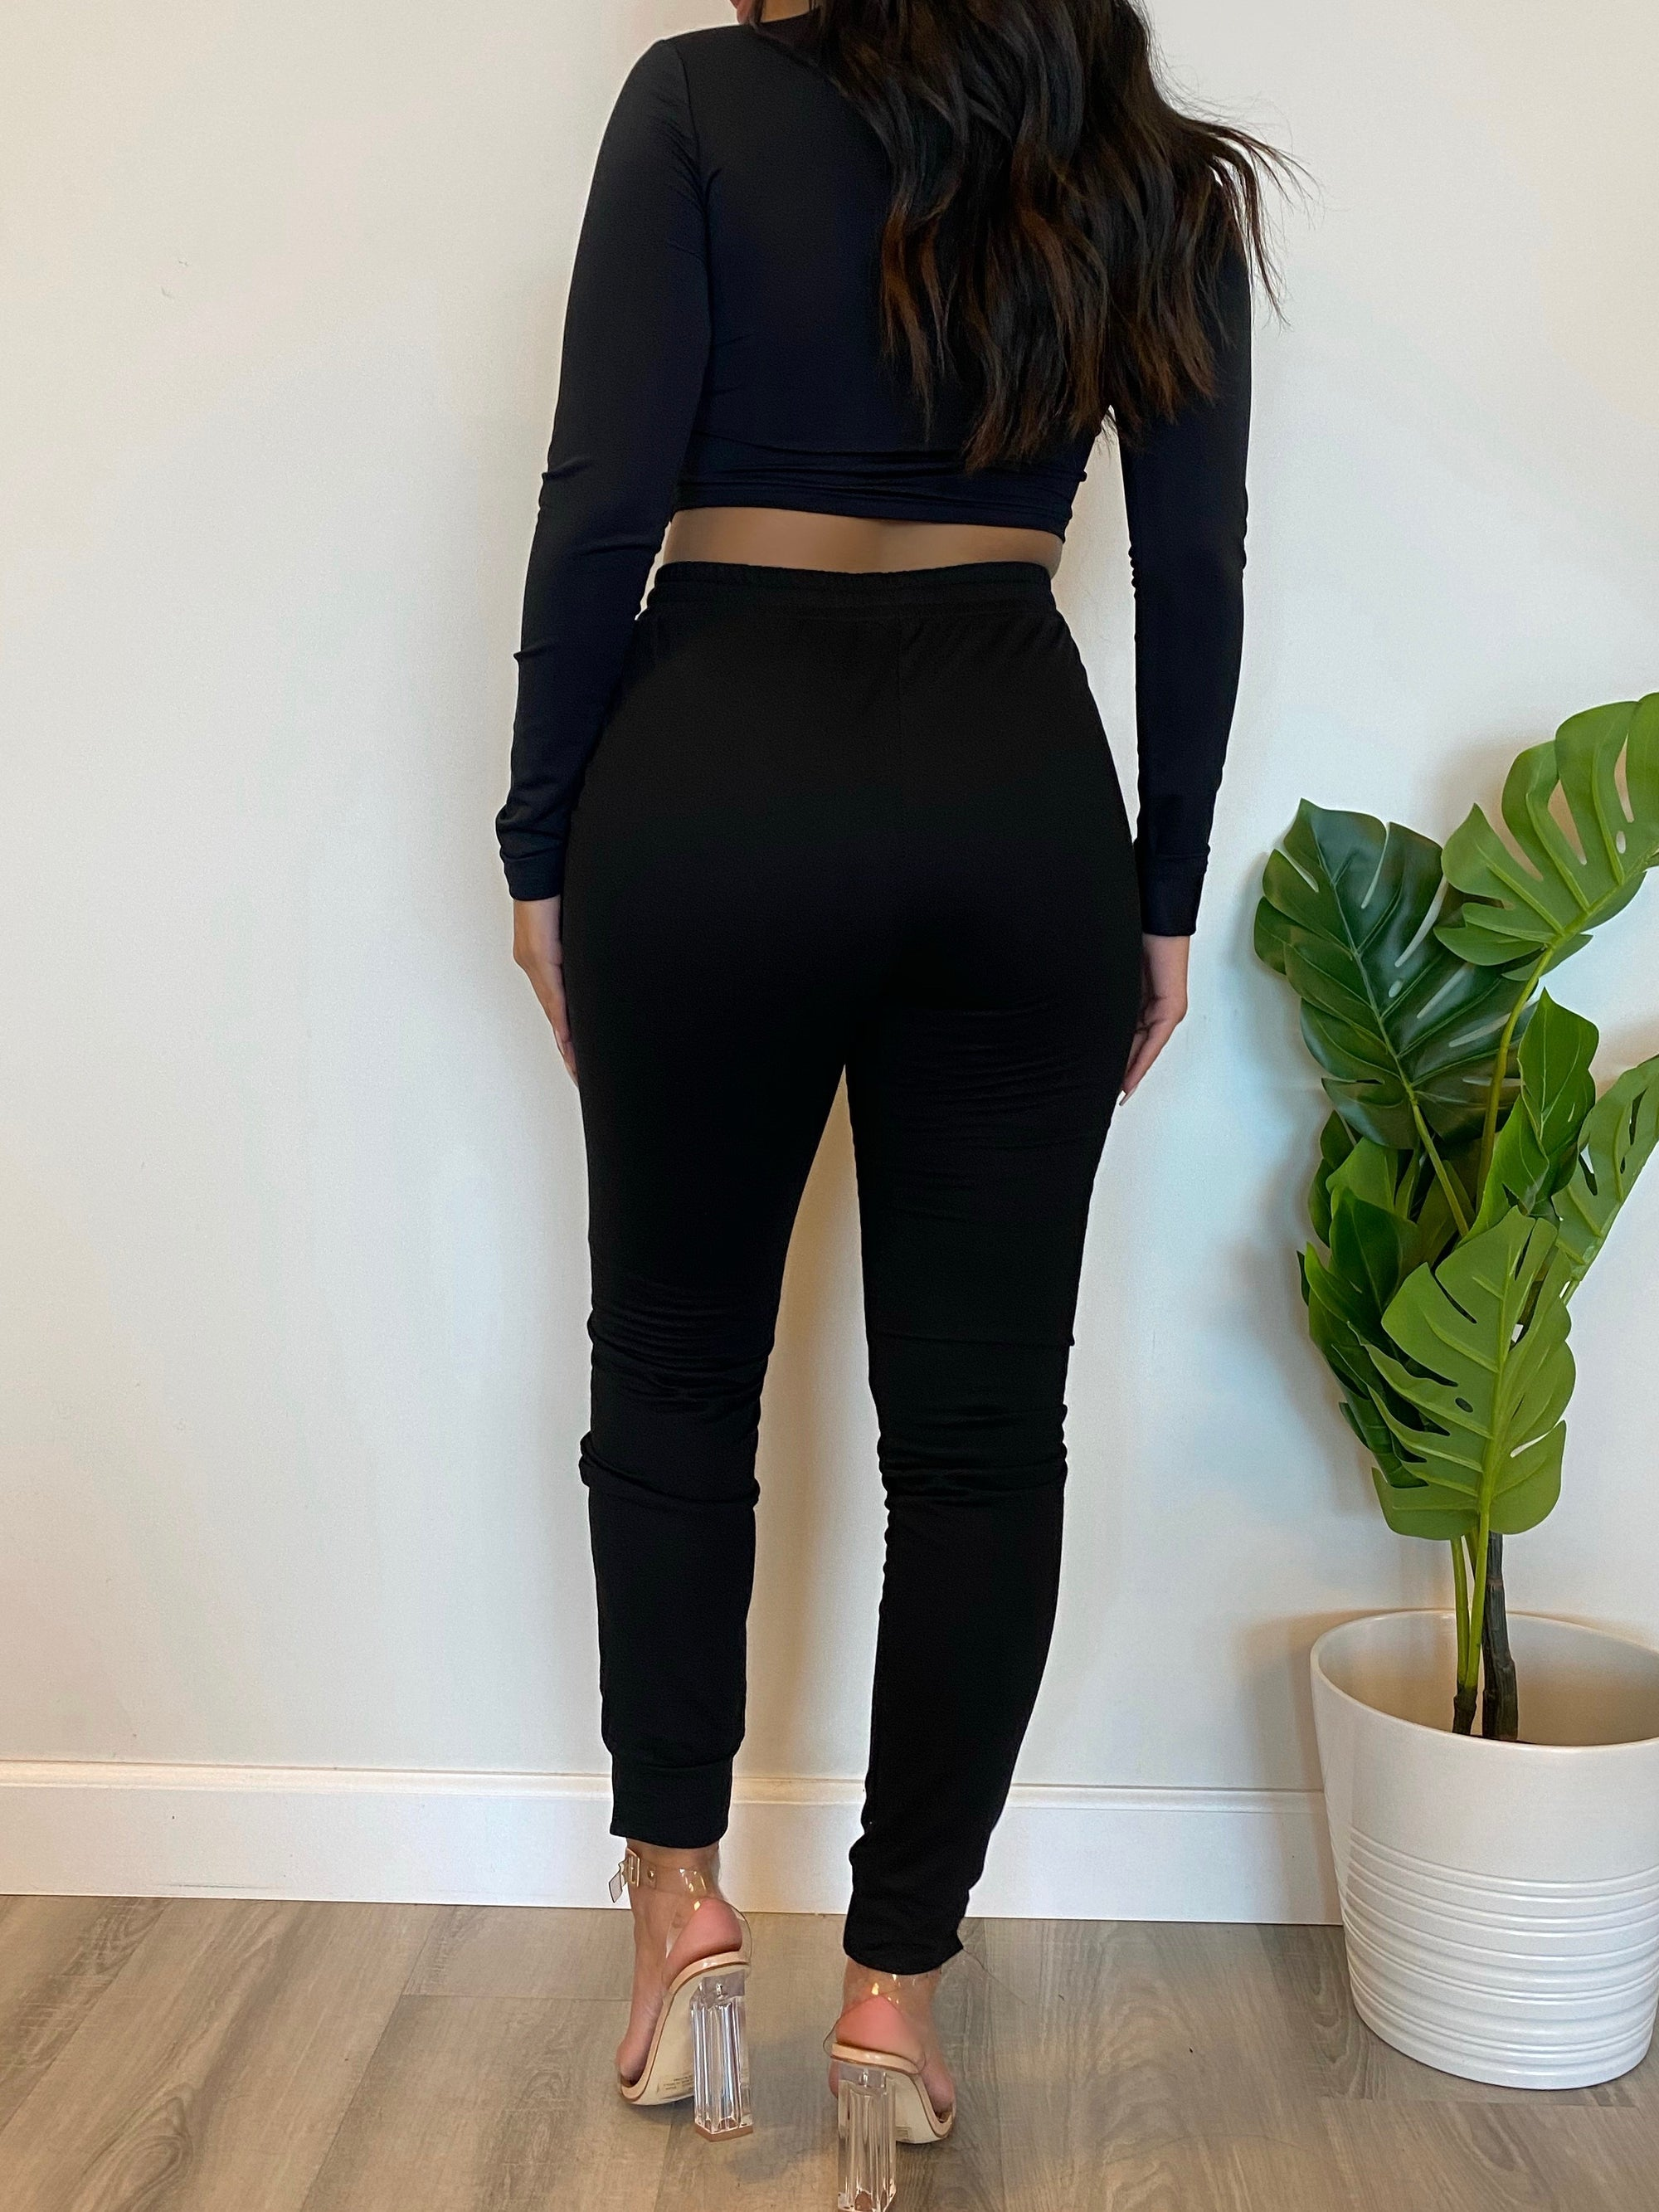 black 2 piece, long sleeve crop top, front zipper, collar top, high waist joggers, drawstring